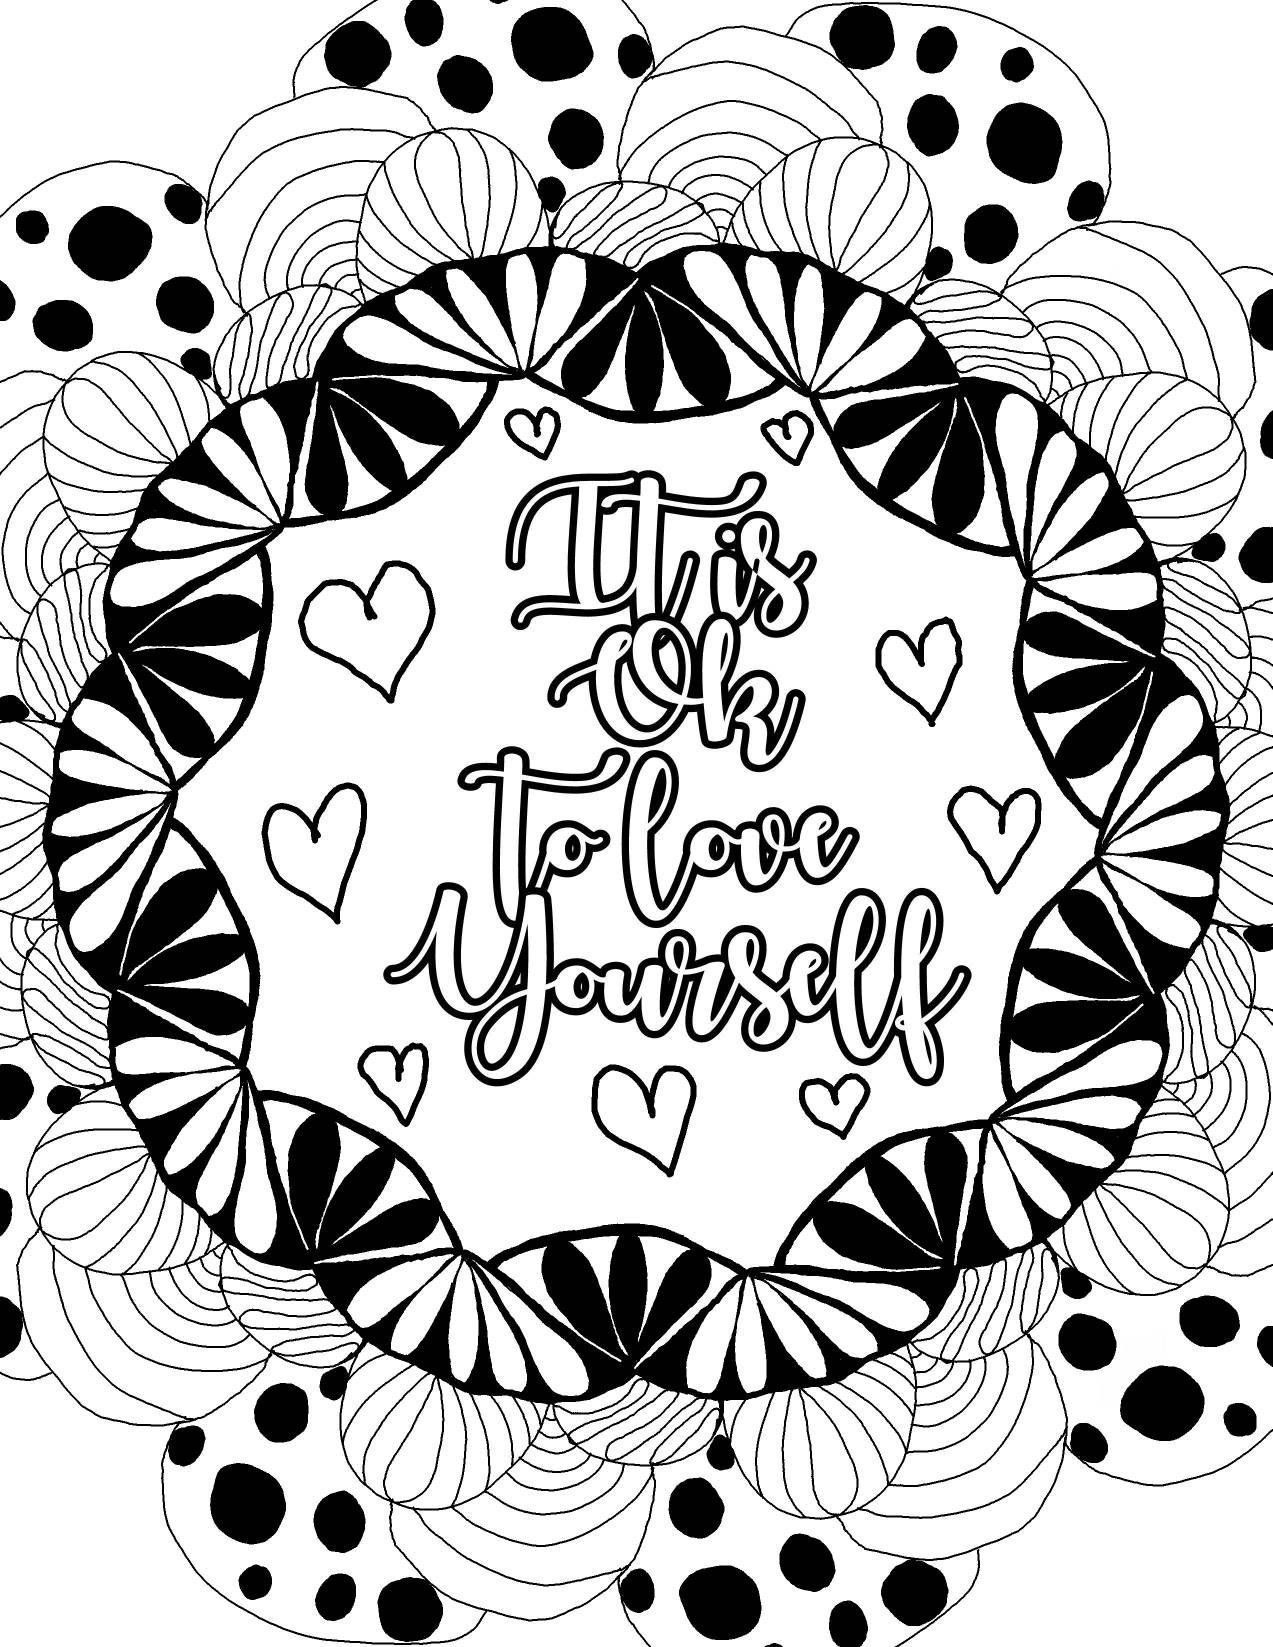 Self Love Quotes Coloring Pages Coloring Pages Inspirational Quote Coloring Pages Coloring Books